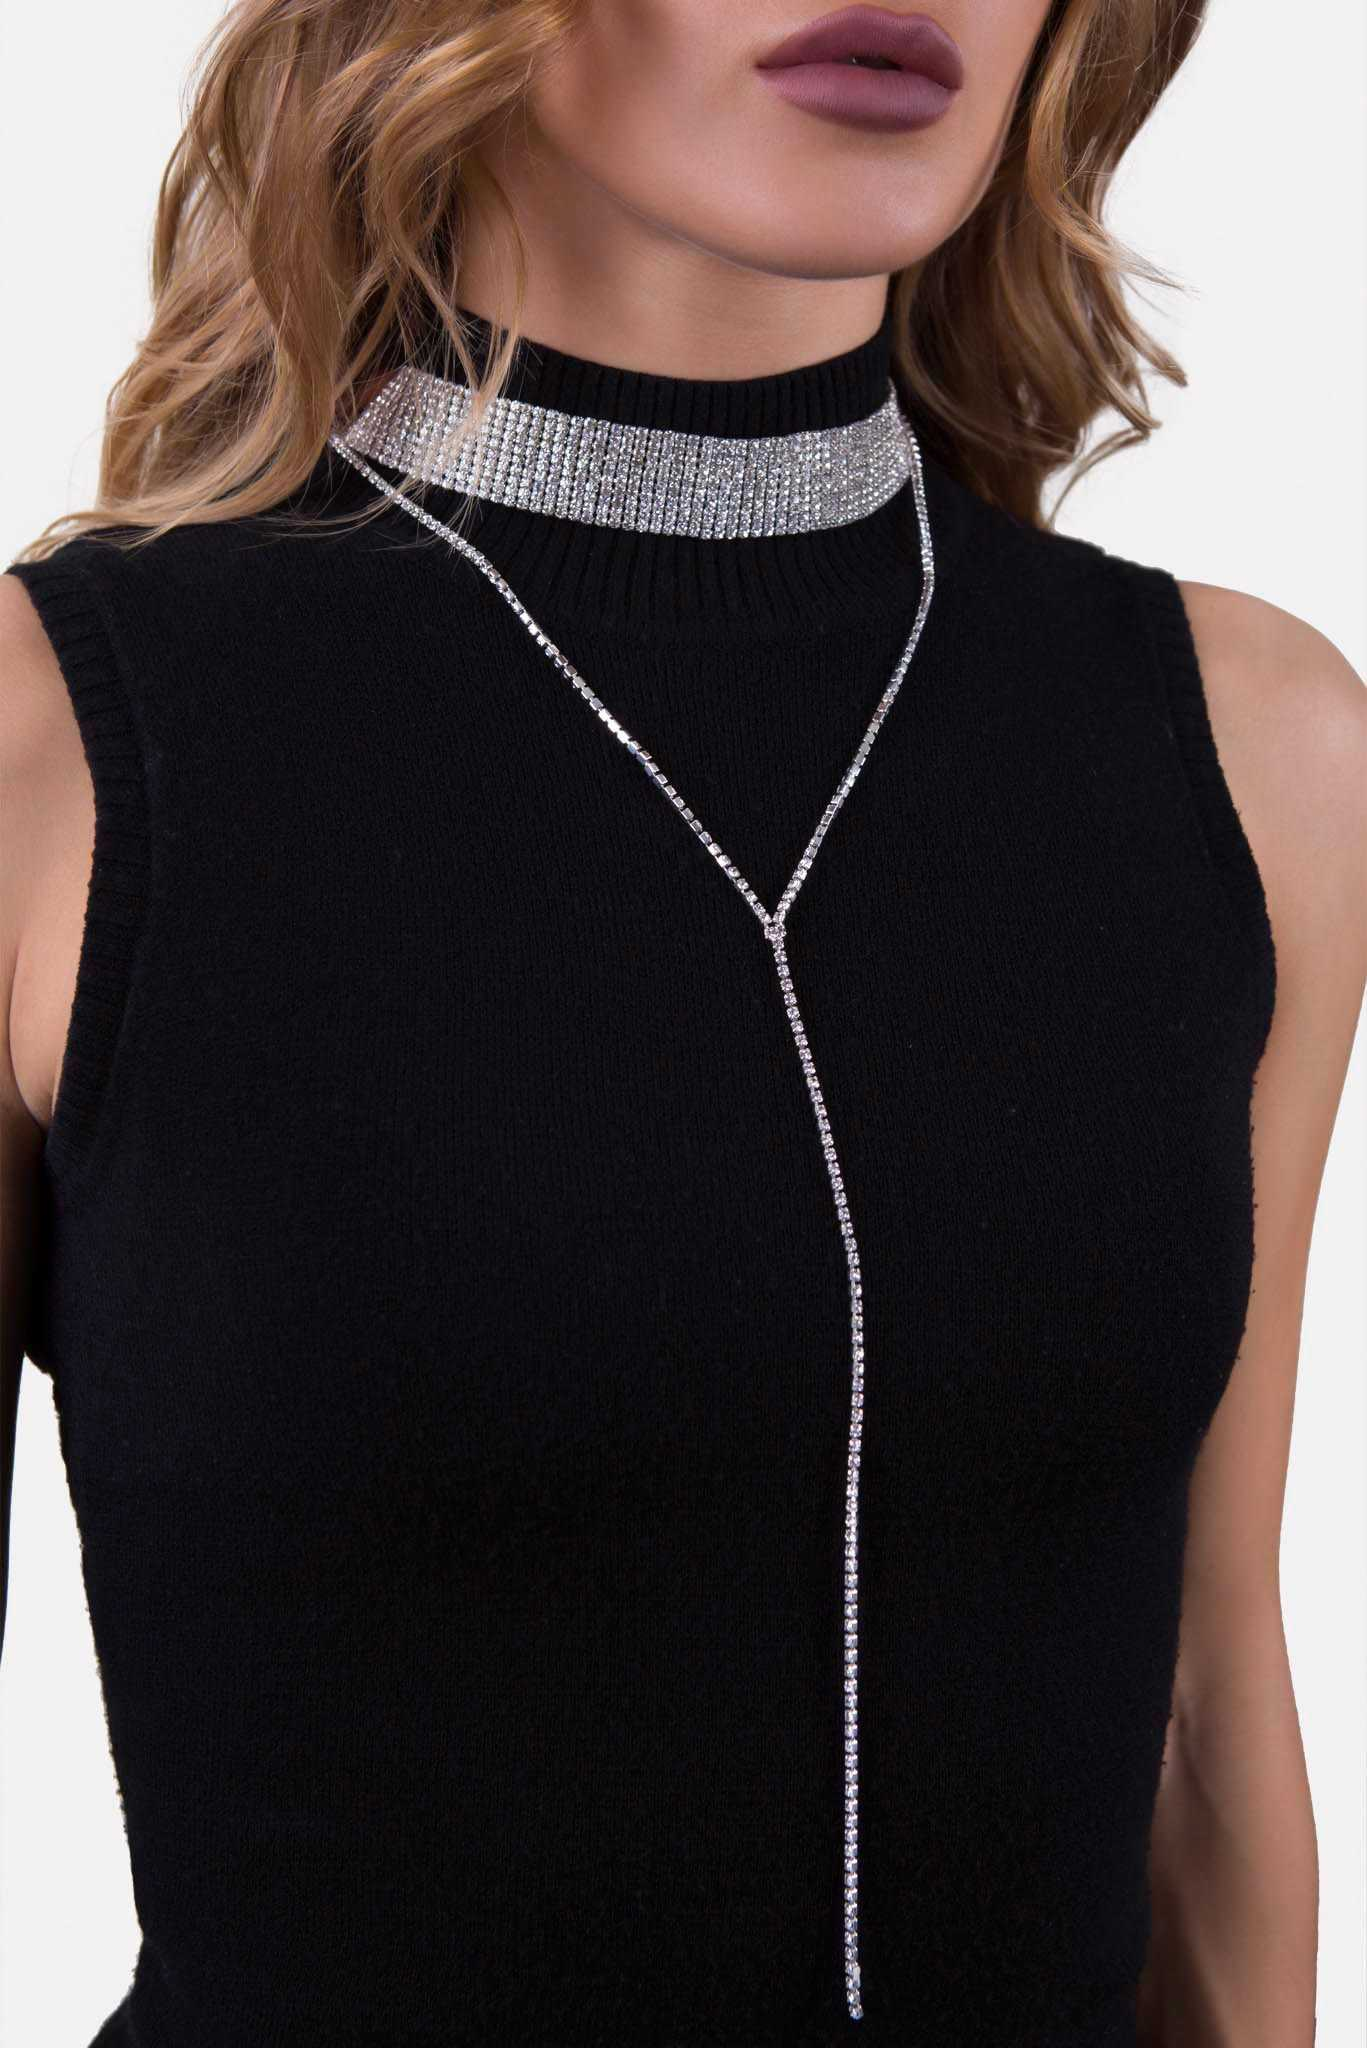 Tiered Choker Dropchain Silver